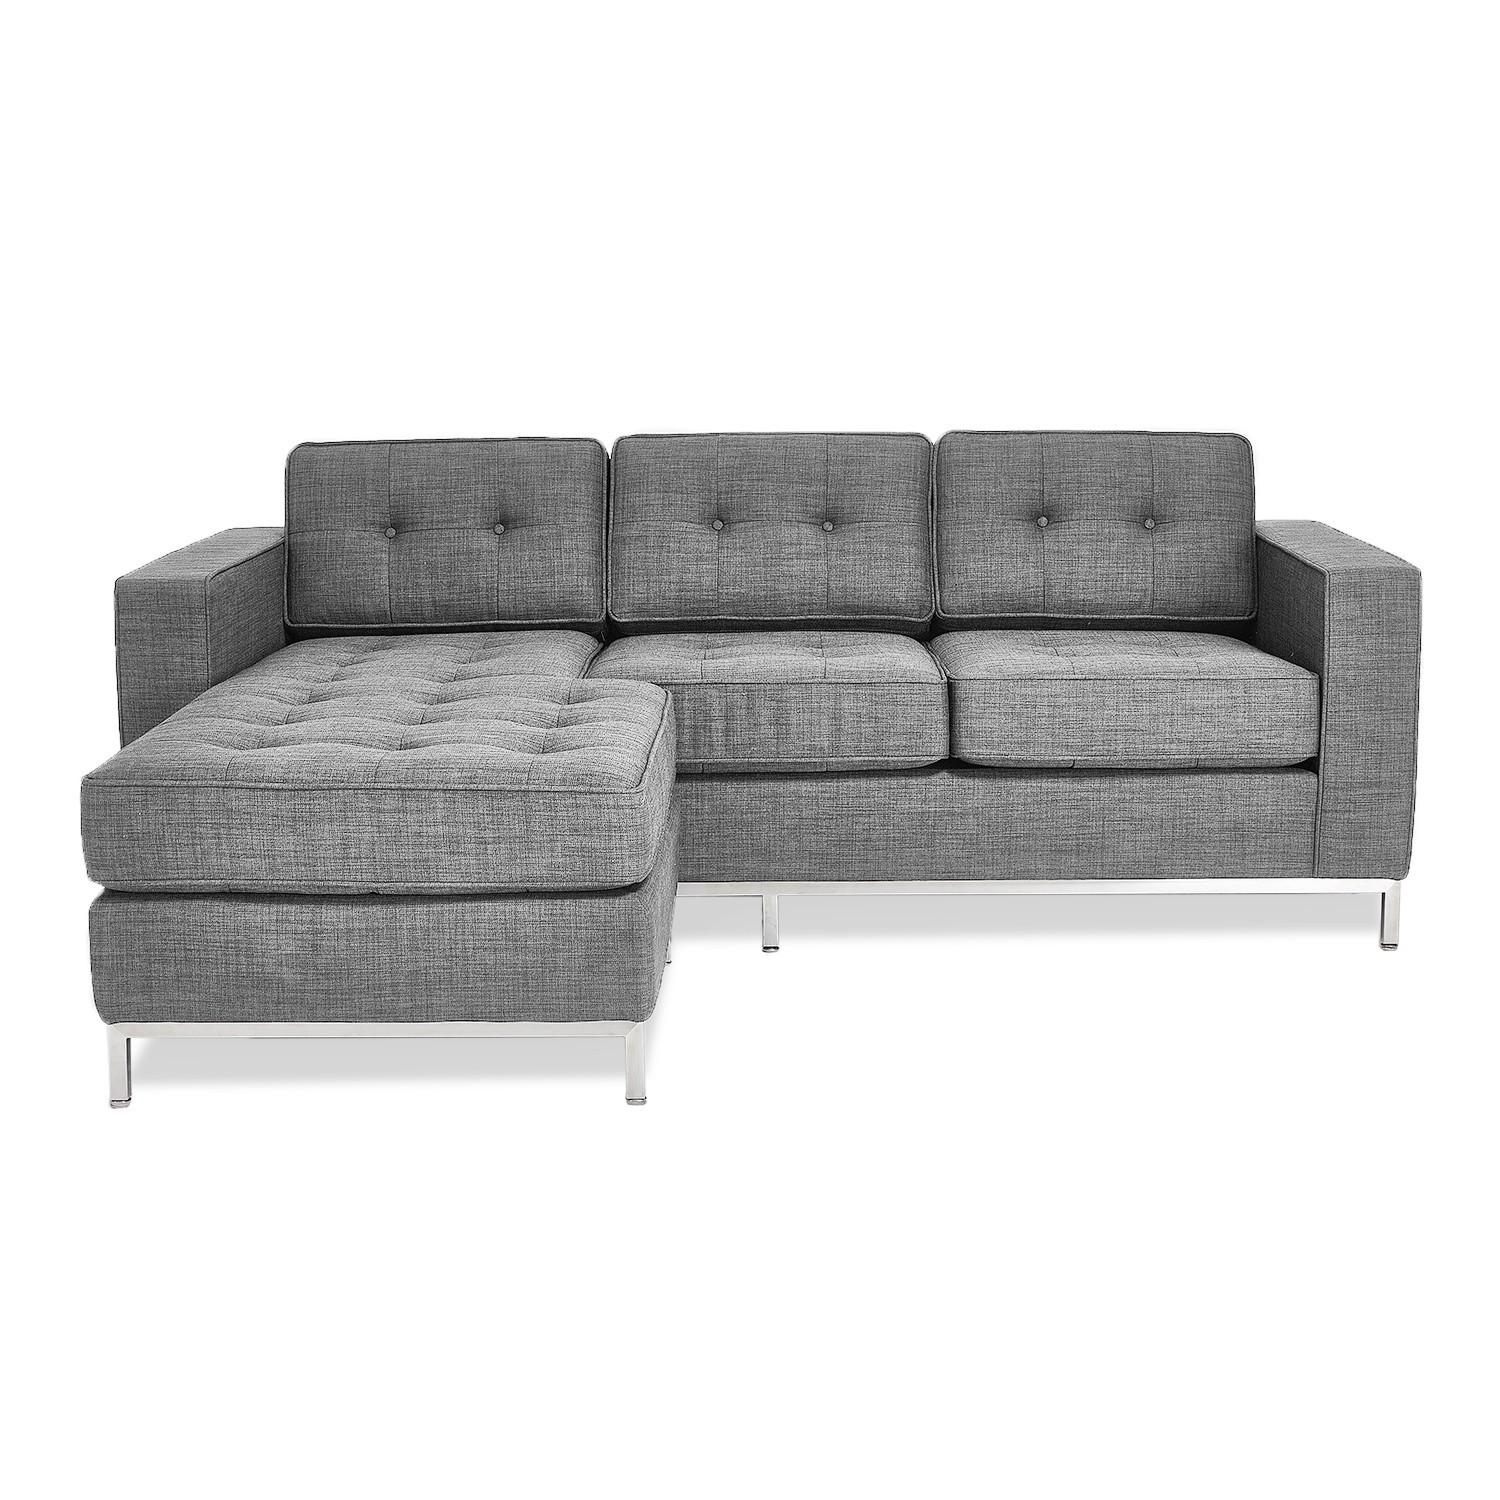 Gus* Modern Jane Loft Bi Sectional – Abc Carpet & Home Pertaining To Jane Bi Sectional Sofa (Image 7 of 20)